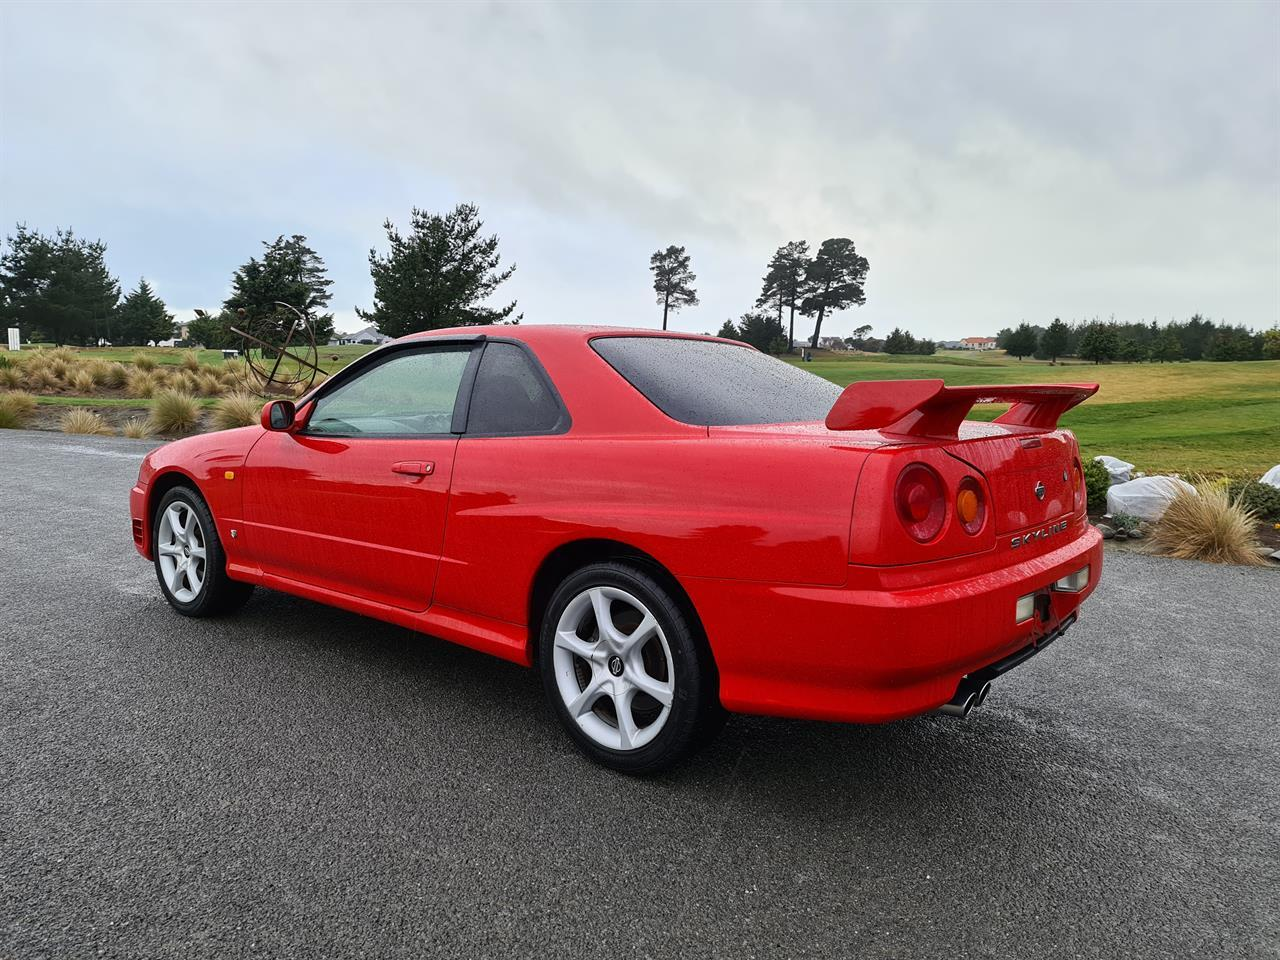 image-2, 2000 Nissan Skyline COUPE 25 GT TURBO at Christchurch